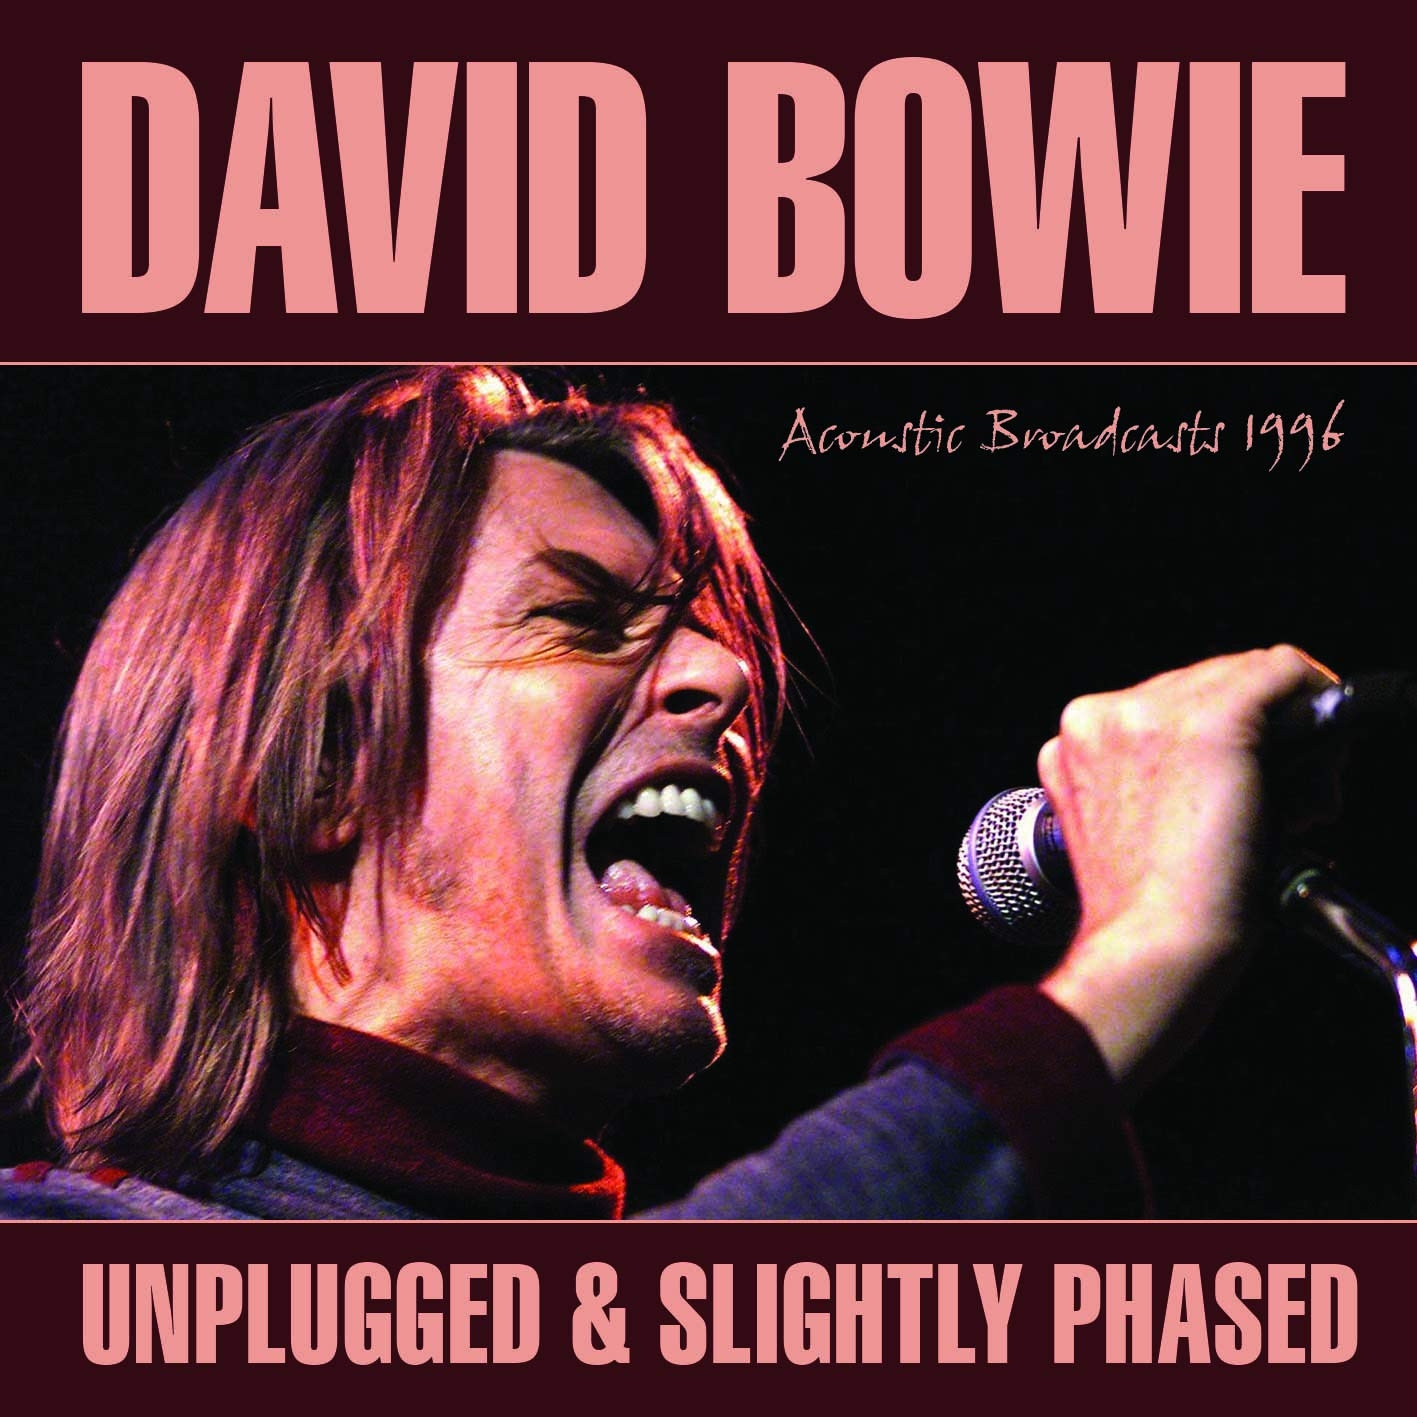 Unplugged & Slightly Phased Live 1996